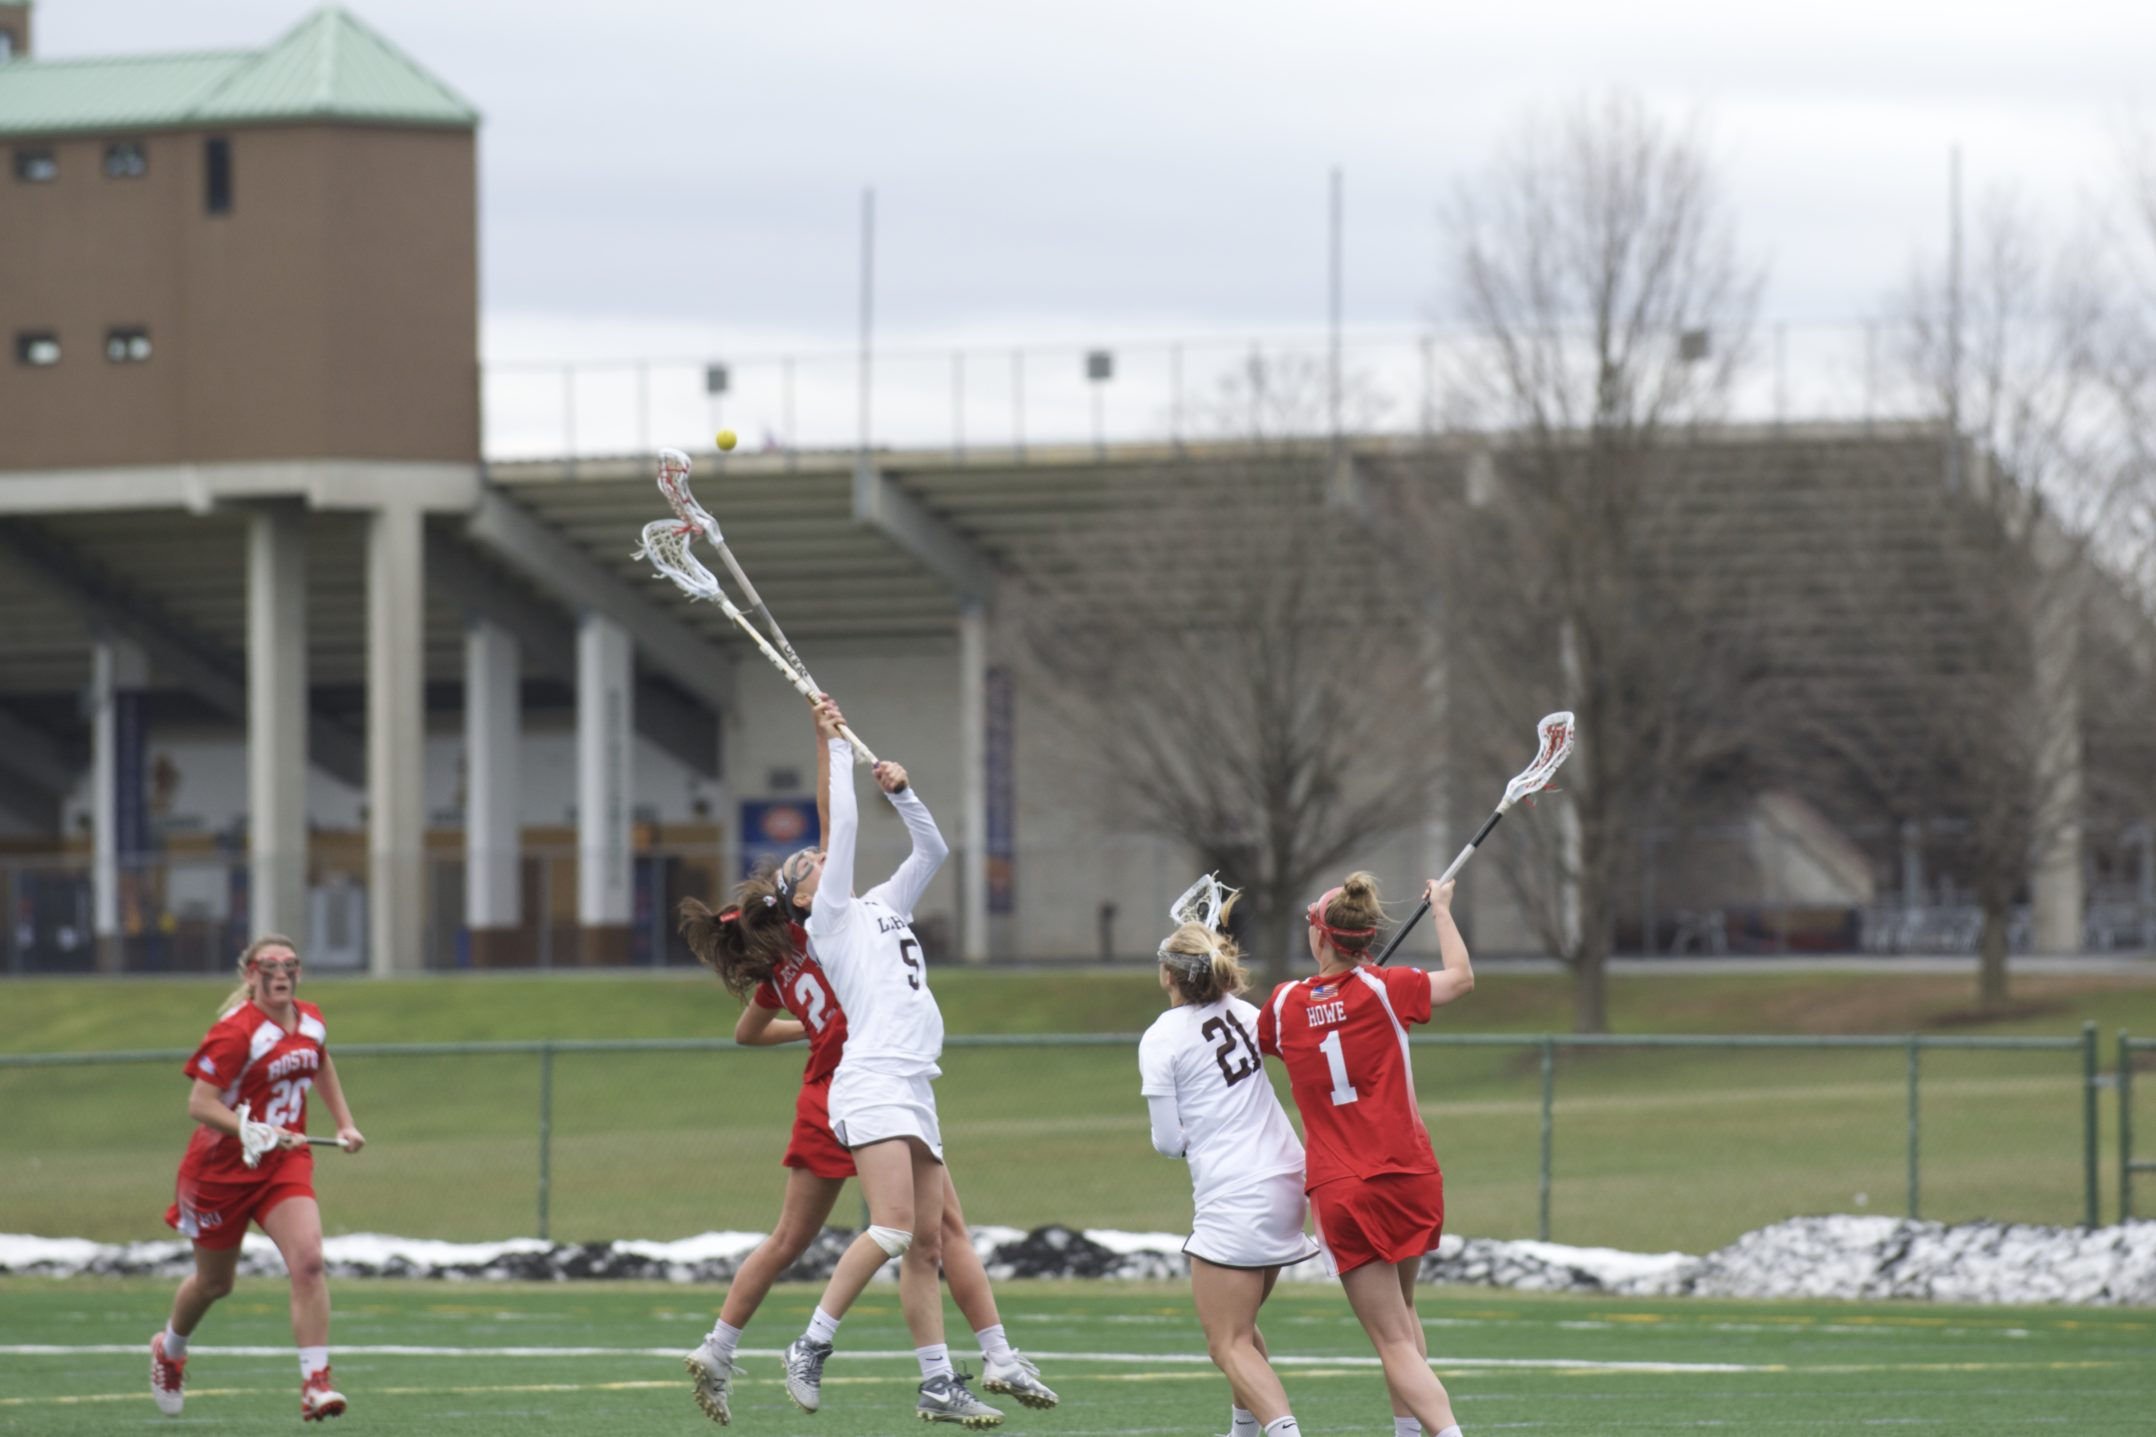 Lehigh senior midfielder Lauren Beausoleil goes up for a draw control against Boston University sophomore midfielder Katie Belval on Saturday, April 1, 2017, at Ulrich Sports Complex. Beausoleil had two draw controls during the Mountain Hawks' 13-12 win over the Terriers. (Sarah Epstein/B&W Staff)